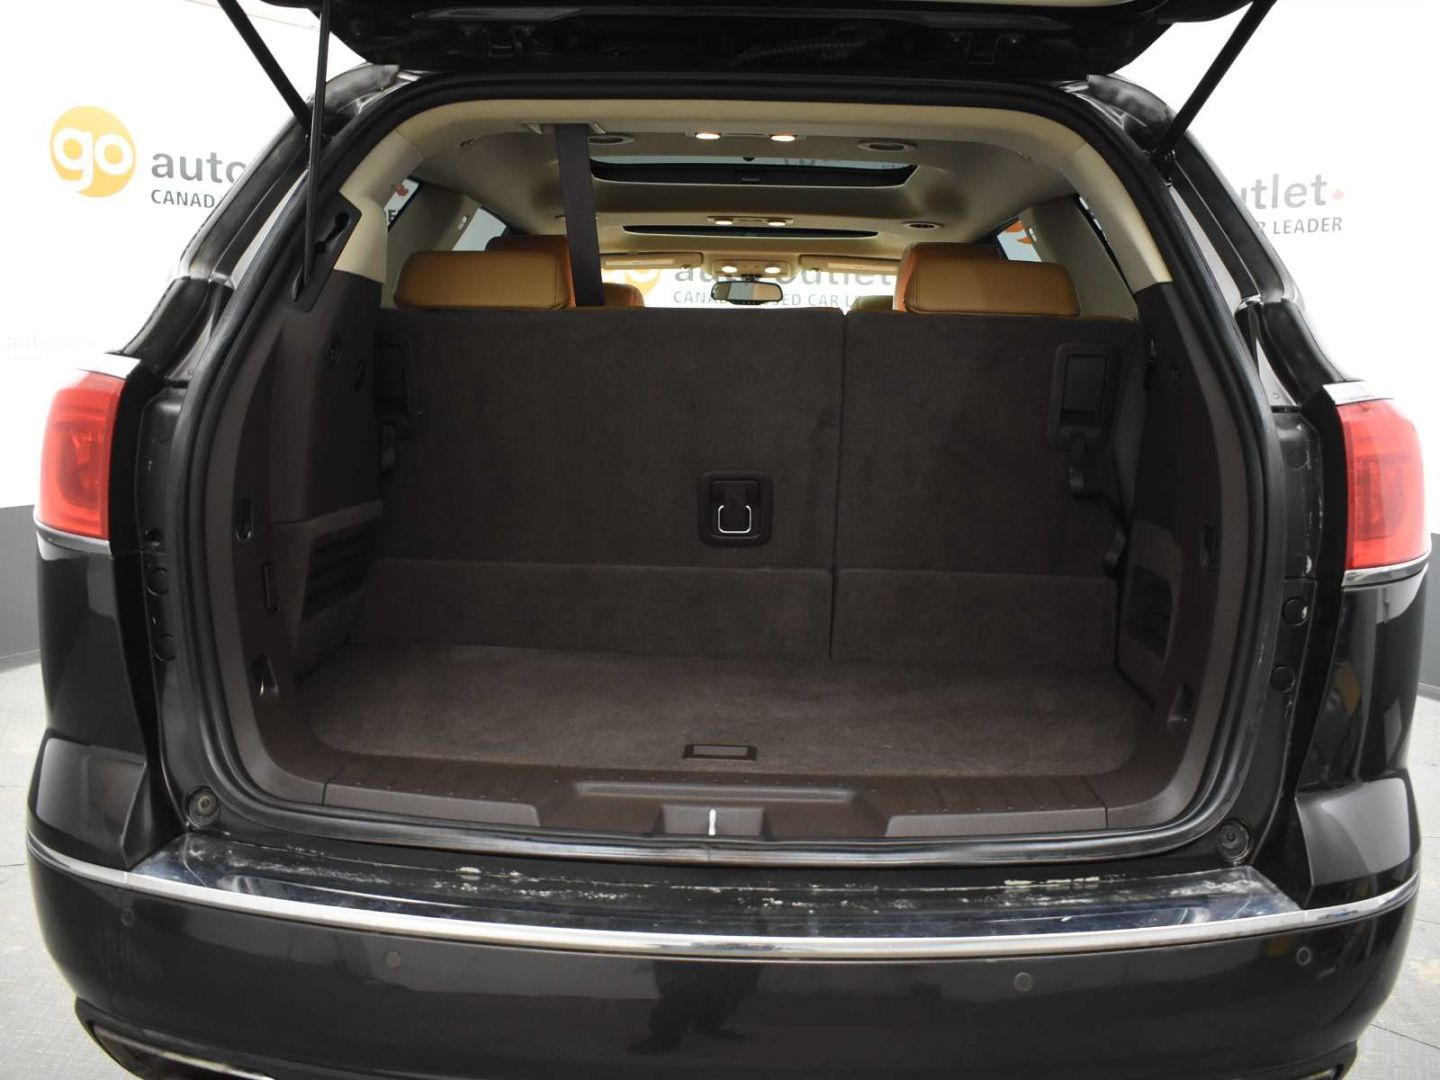 2013 Buick Enclave Leather for sale in Leduc, Alberta